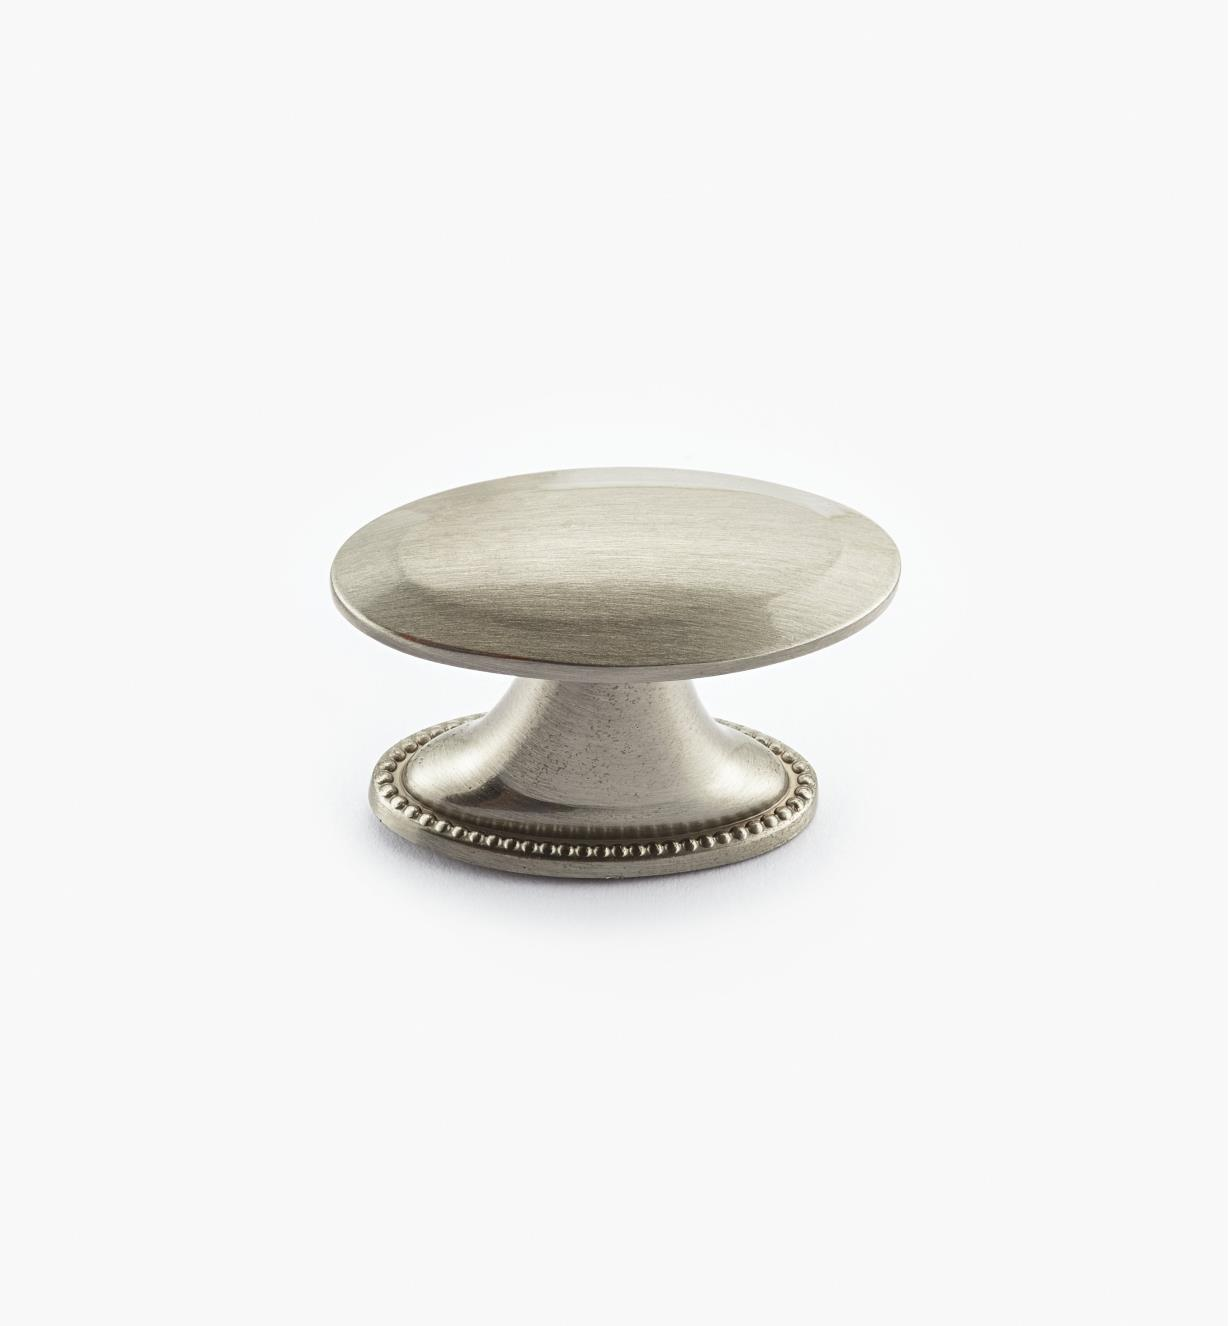 "02A1581 - Atherly Hardware –Satin Nickel Oval Knob, 1 1/2"" x 3/4"""